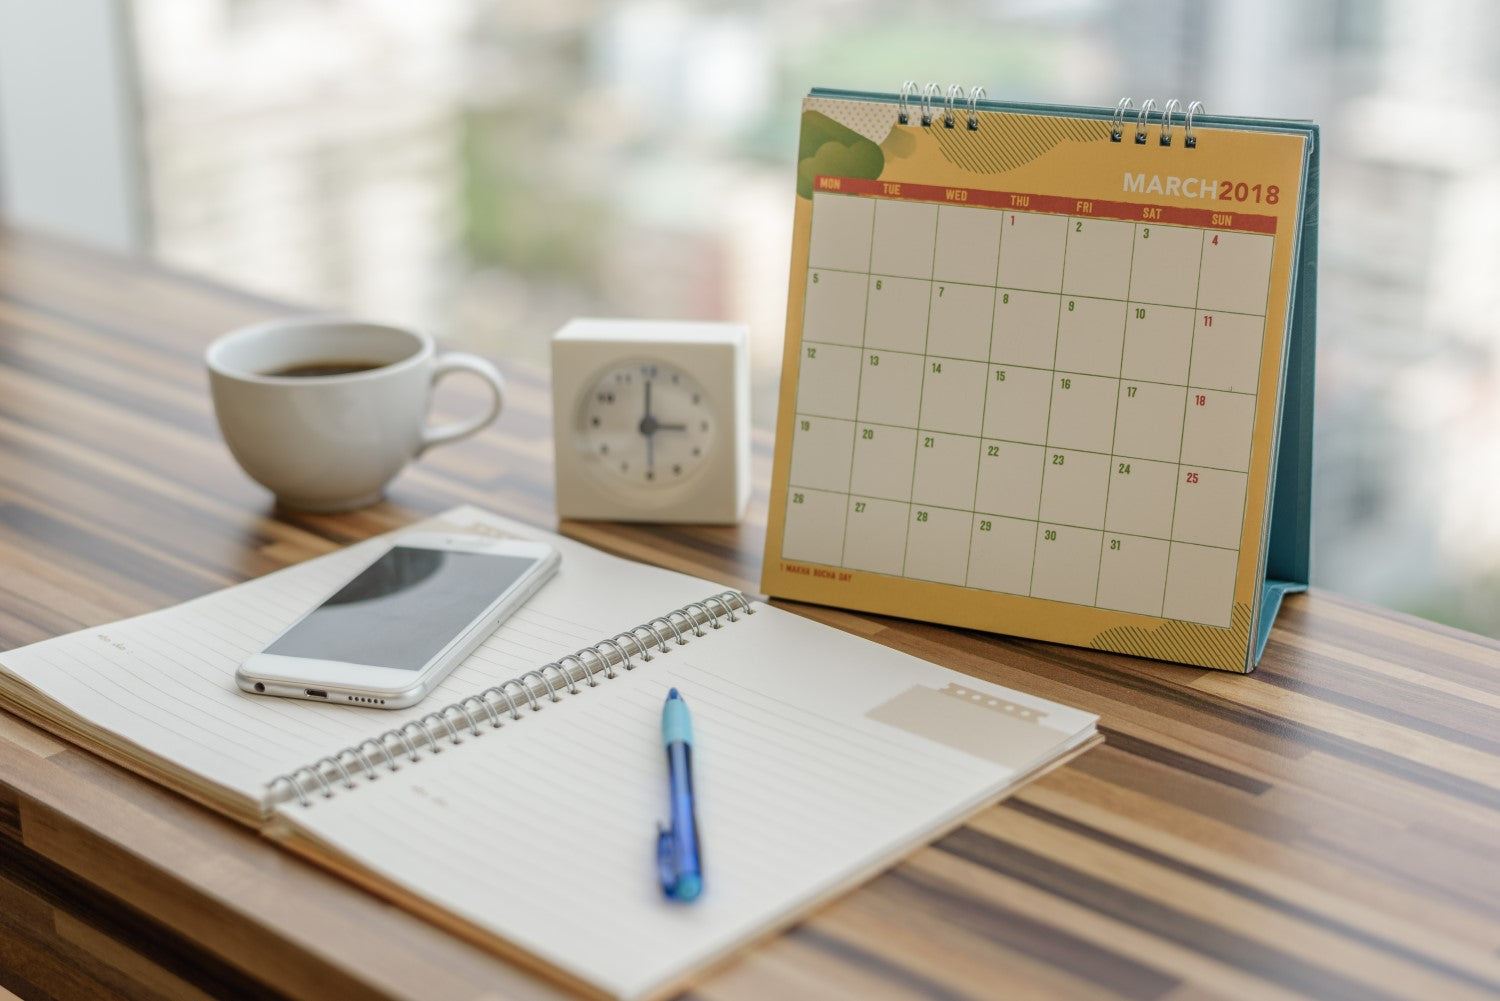 coffee,clock, calendar, notebook, pen and phone on a table